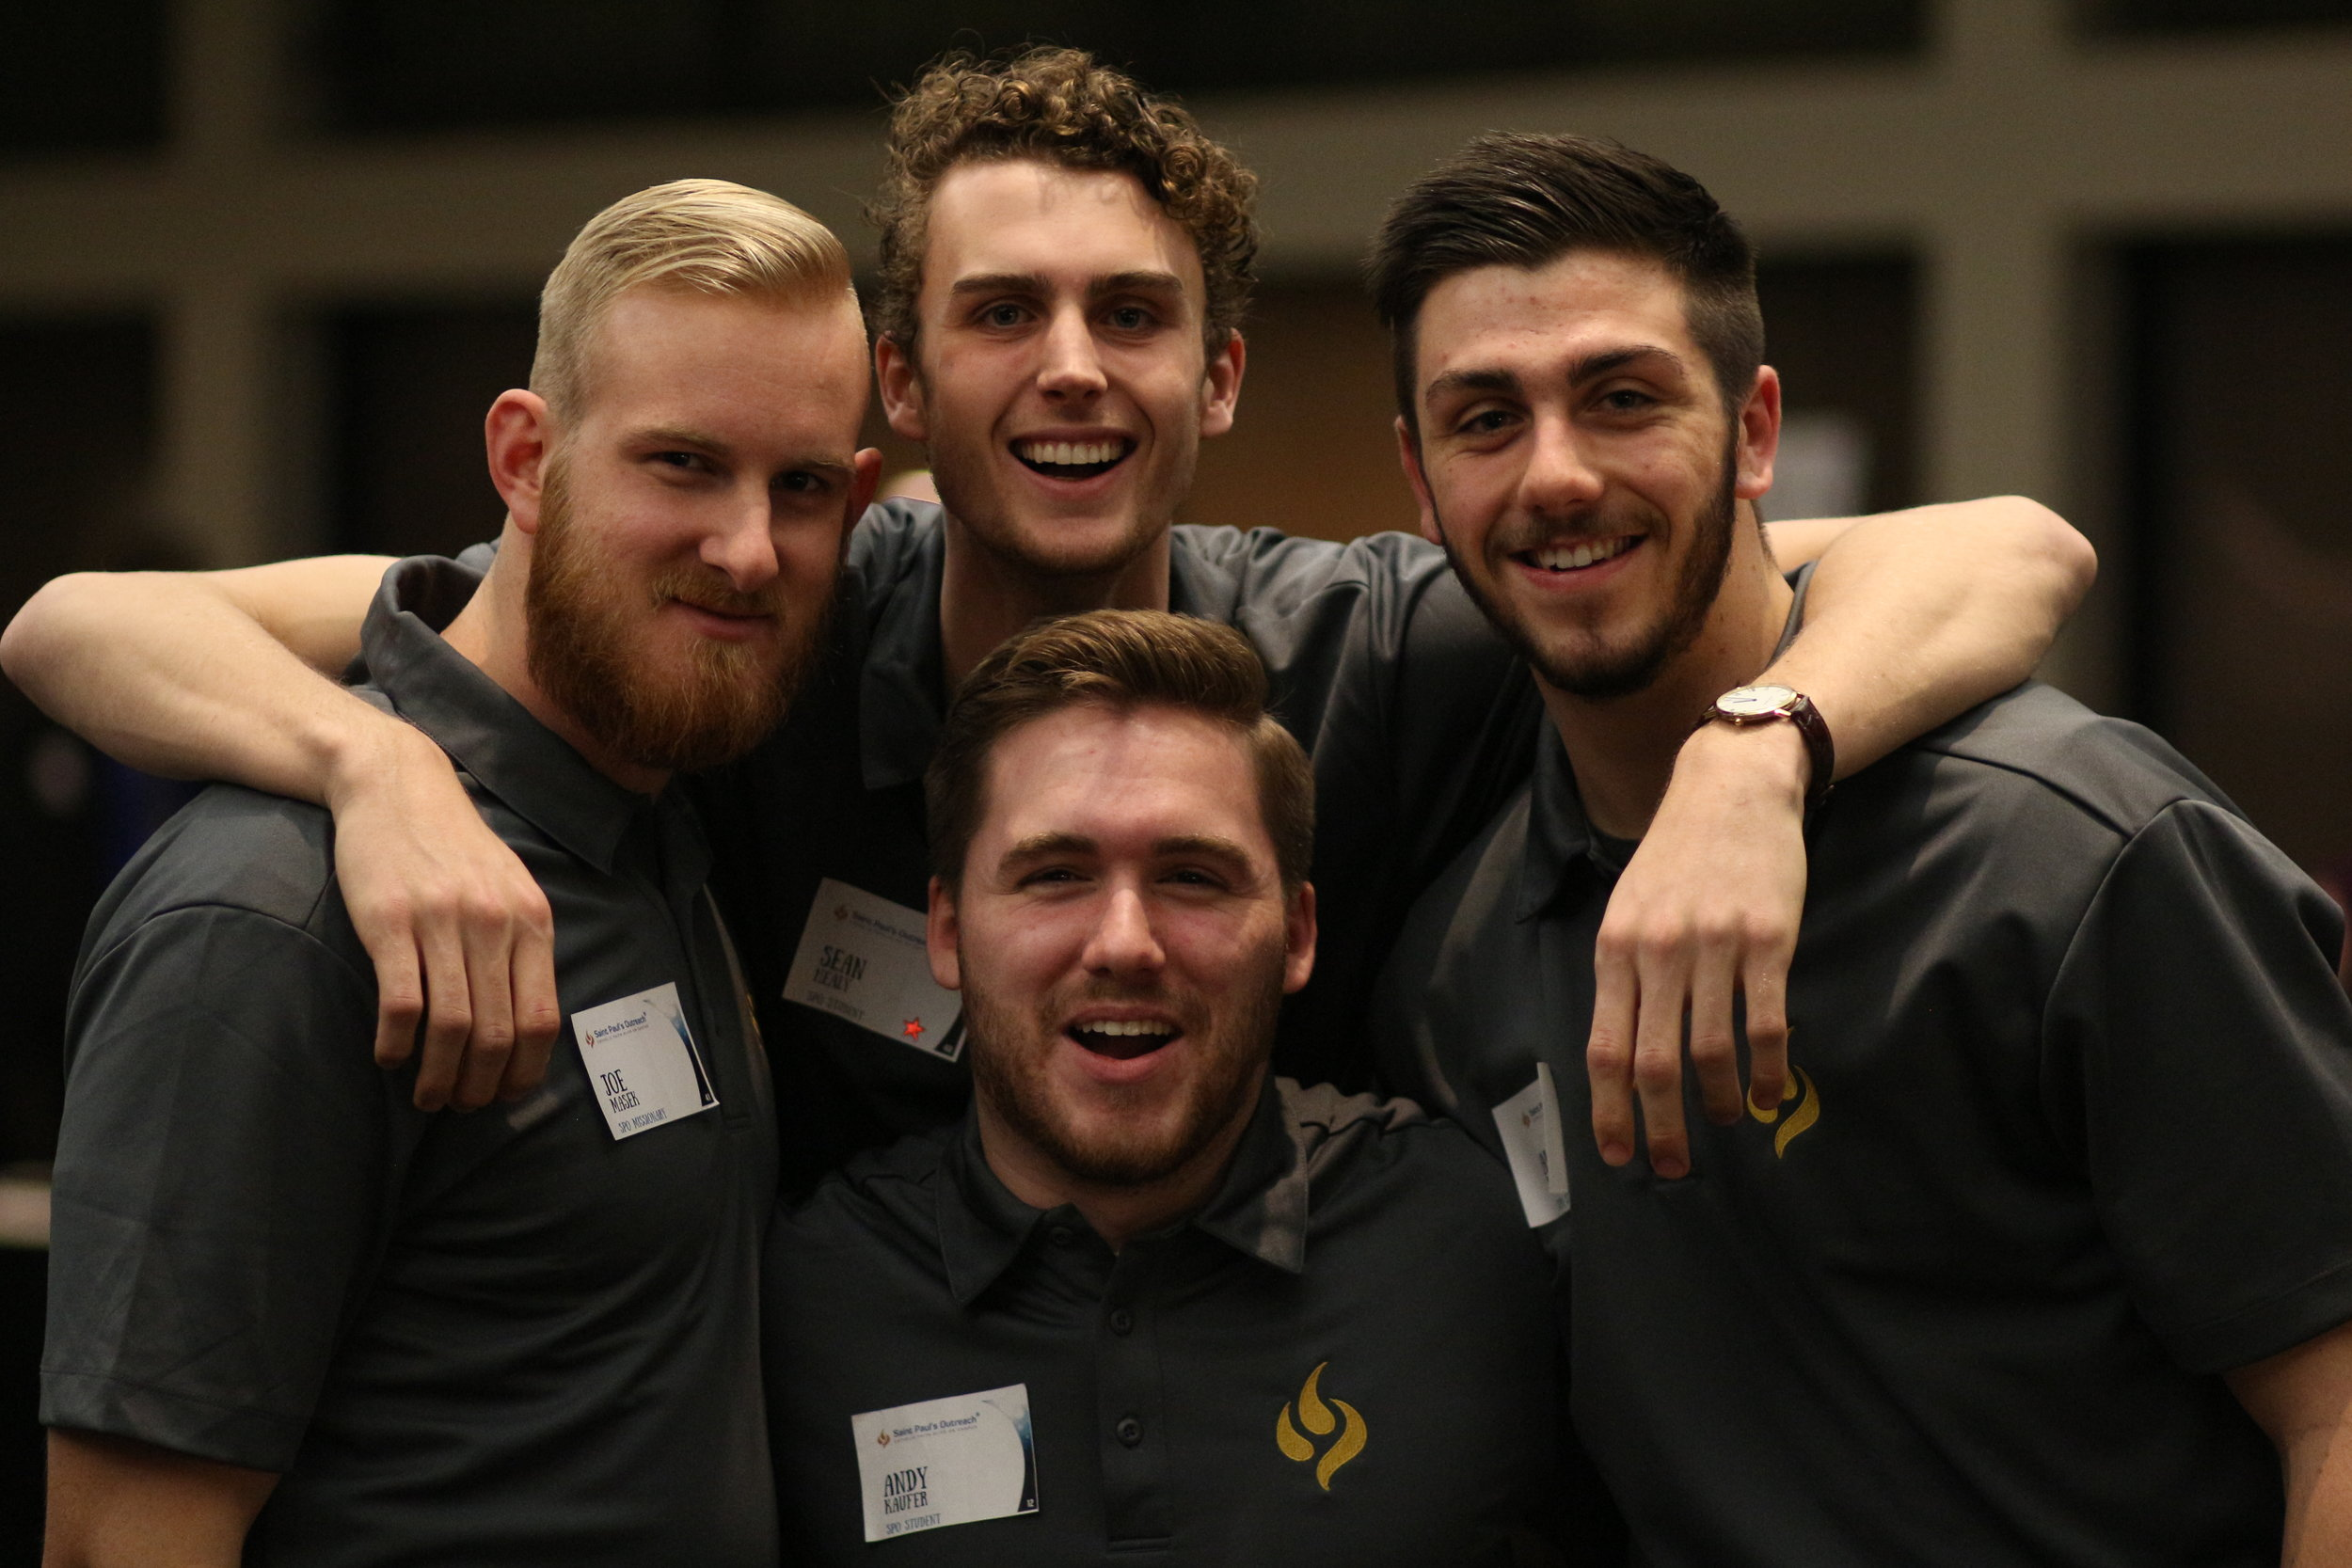 Students and staff of SPO (l-r): Joe Masek, Sean Healy, Andy Kaufer, and Alex Spanton.